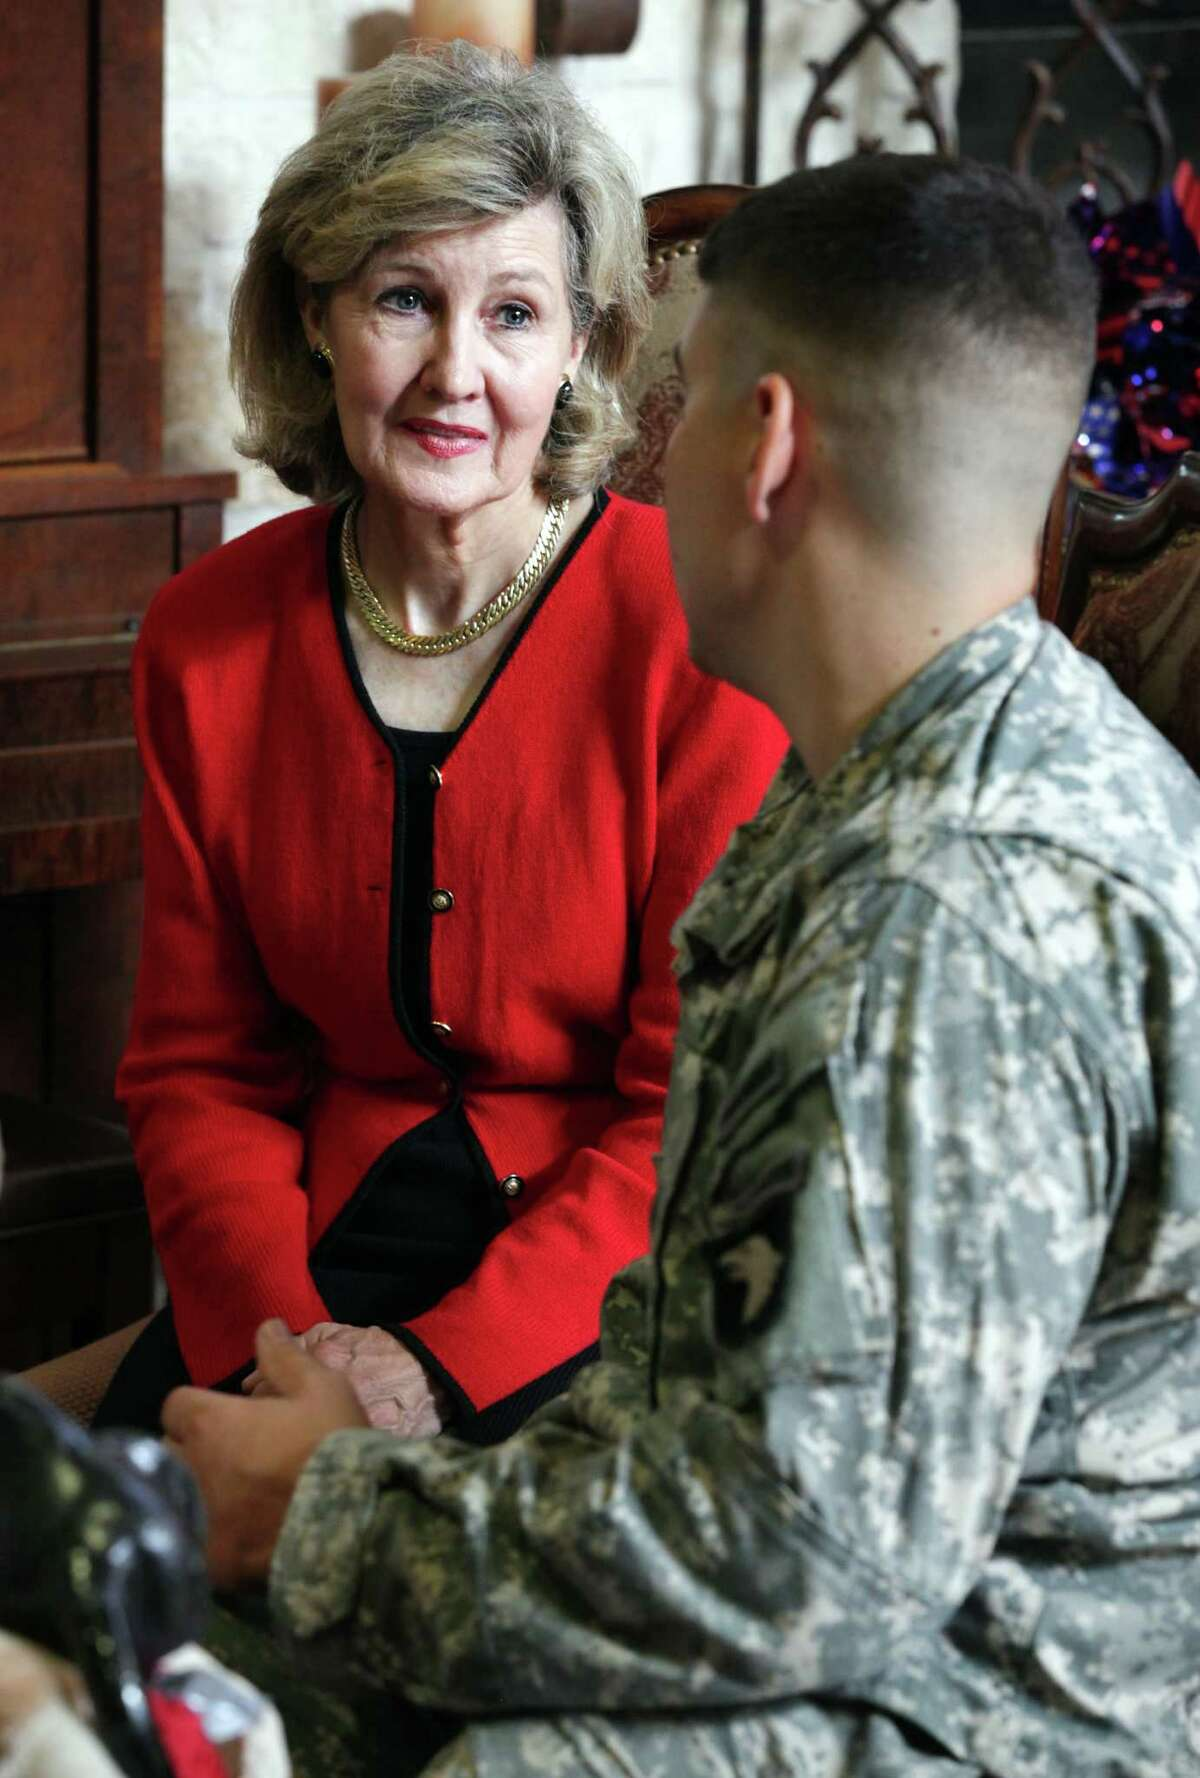 Sen. Kay Bailey Hutchison, left, listens to Capt. Larkin O'Hern, an injured warrior, during a visit to the Warrior and Family Support Center at Fort Sam Houston, Monday, July 2, 2012.